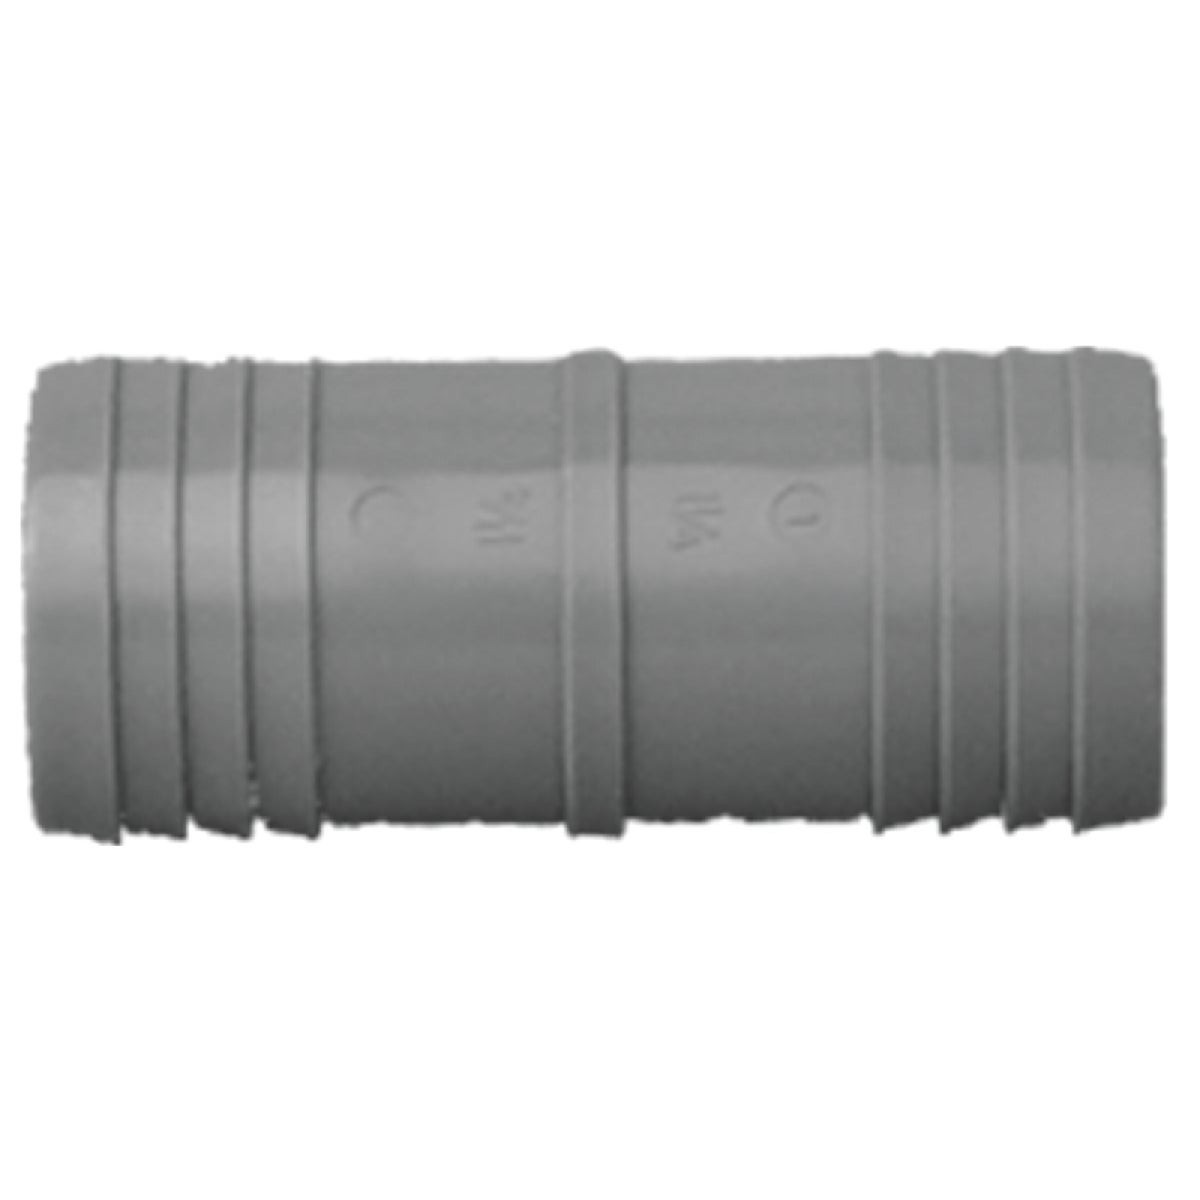 "1/2"" POLY INS COUPLING - 350105 by Genova Inc"